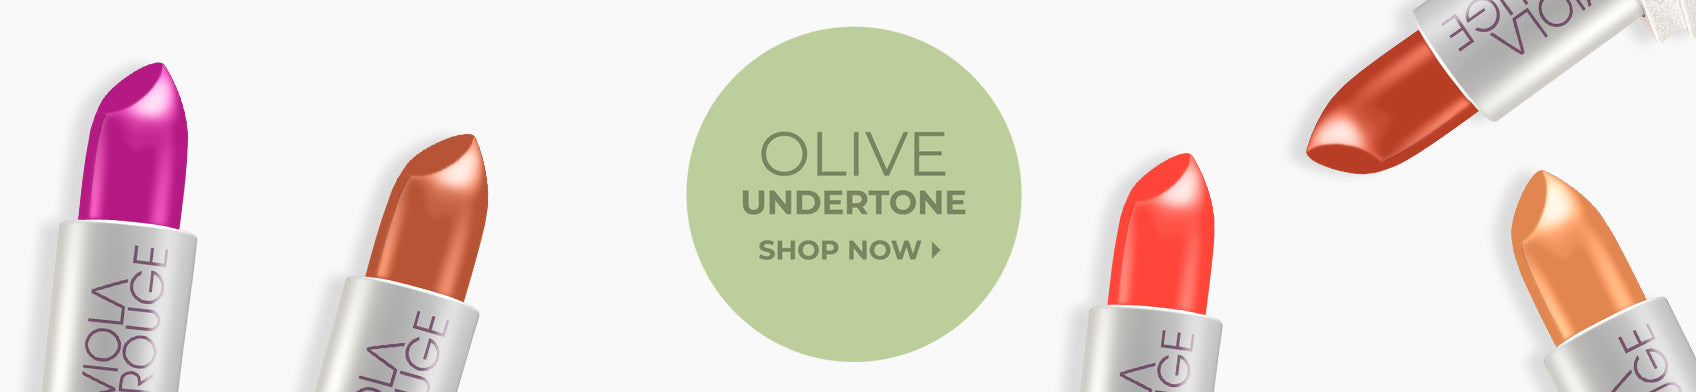 Olive Collection Shades